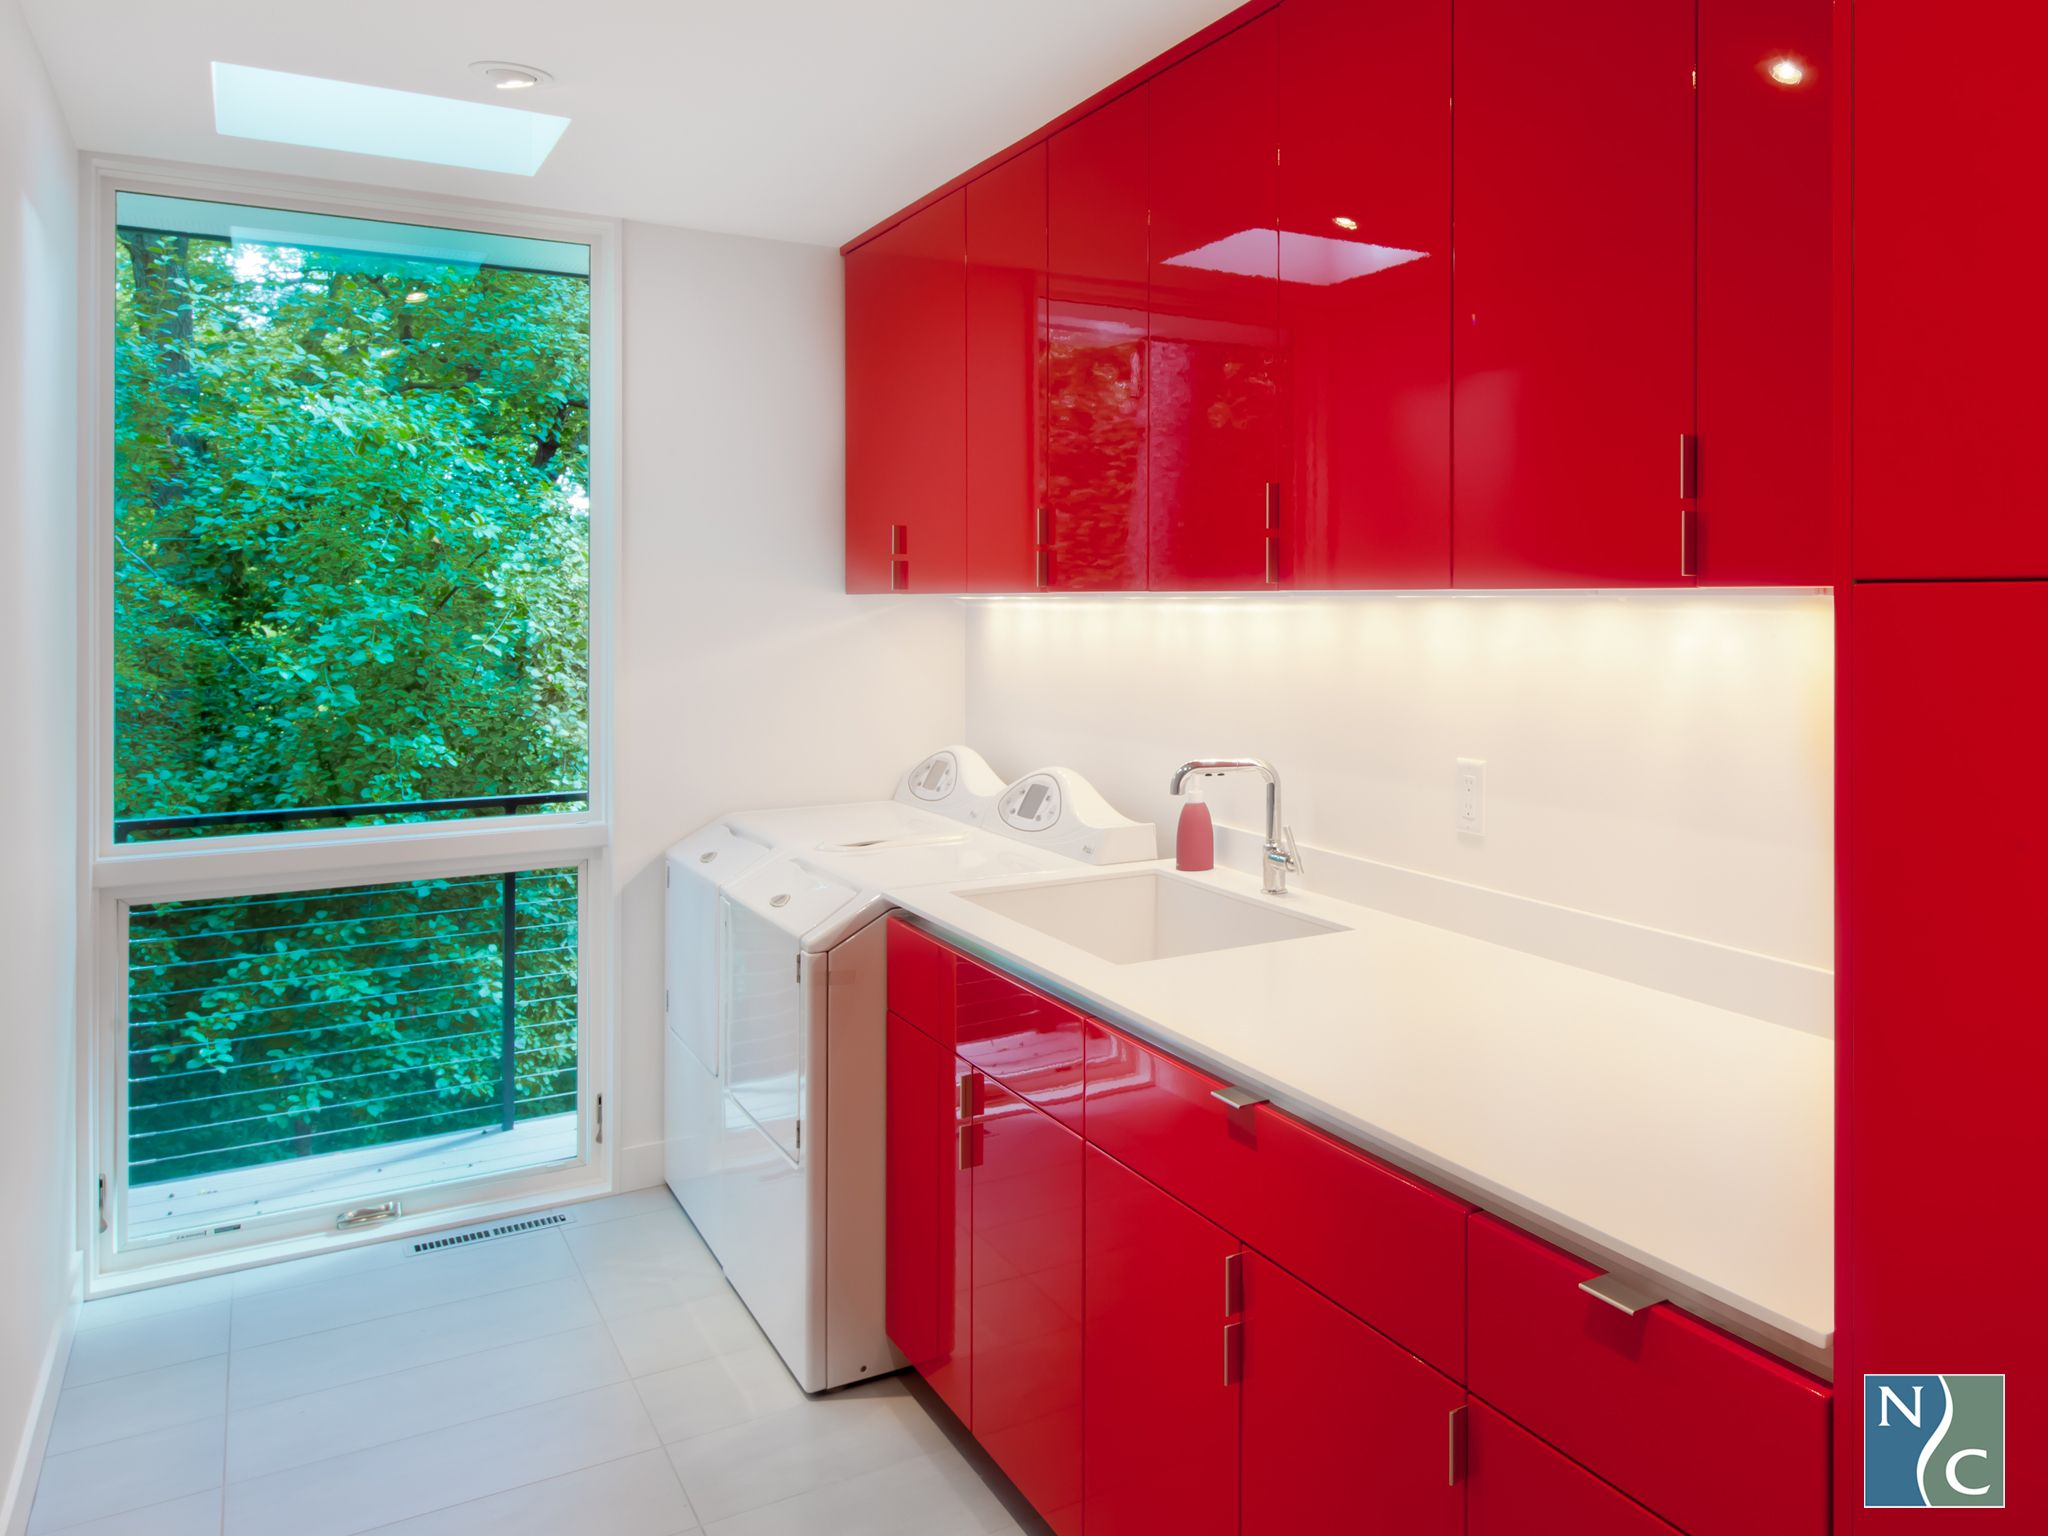 Red High Gloss Makes This Laundry Room So Lux More Http Www Northerncontours Com Products Level Levddf Modern Laundry Rooms Laundry Room Sleek Storage